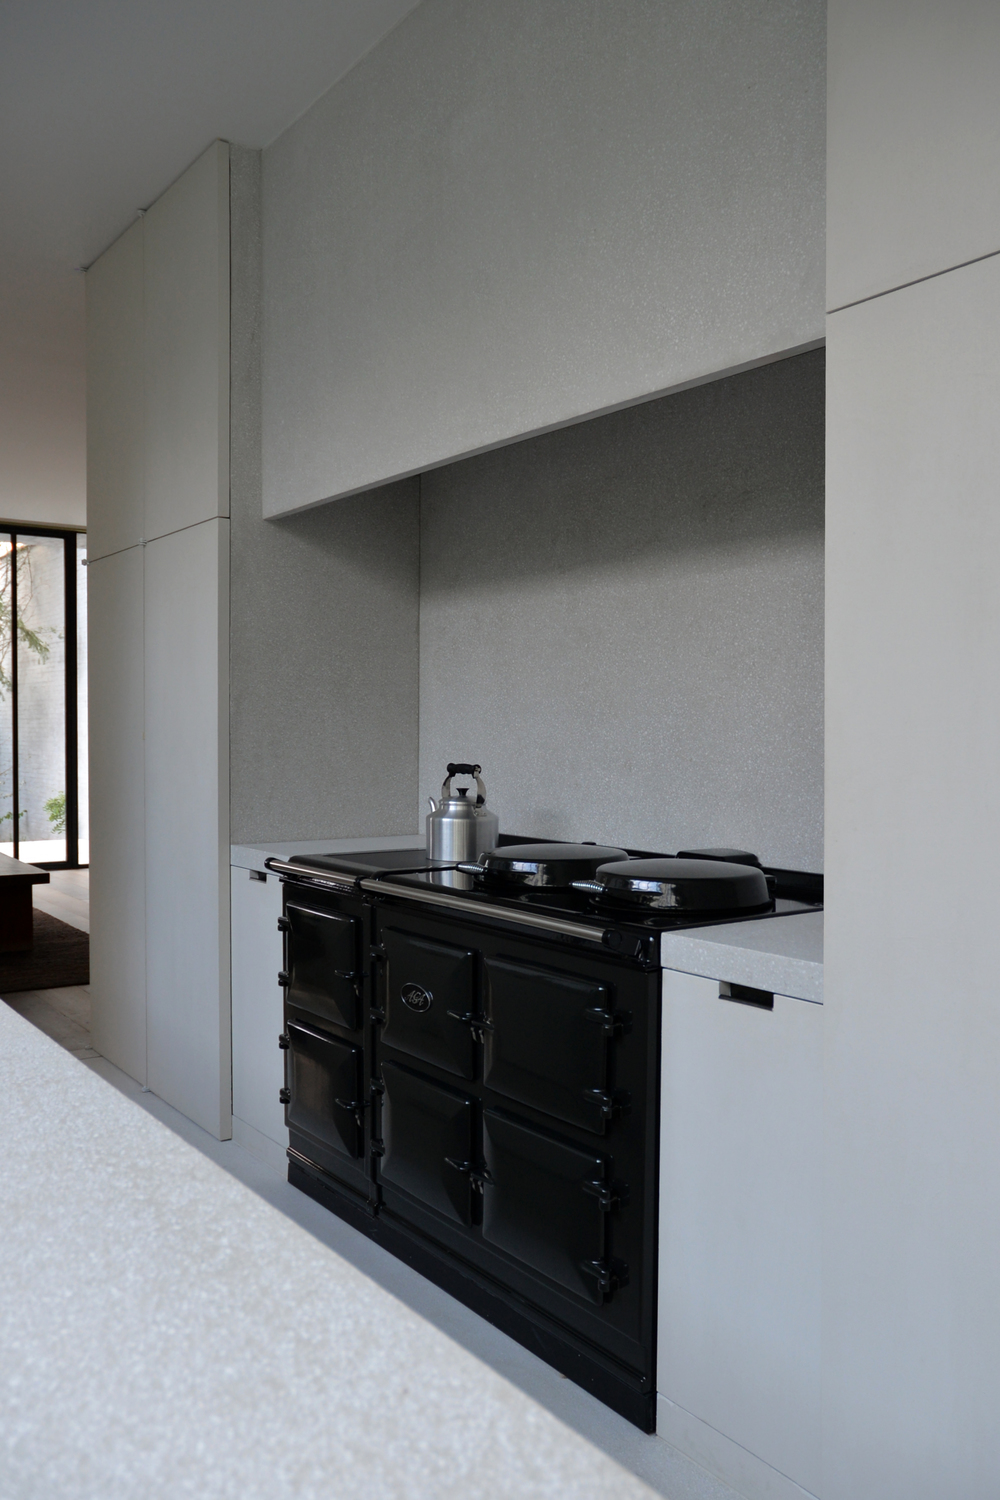 MMI_CLAE_KITCHEN_03.jpg